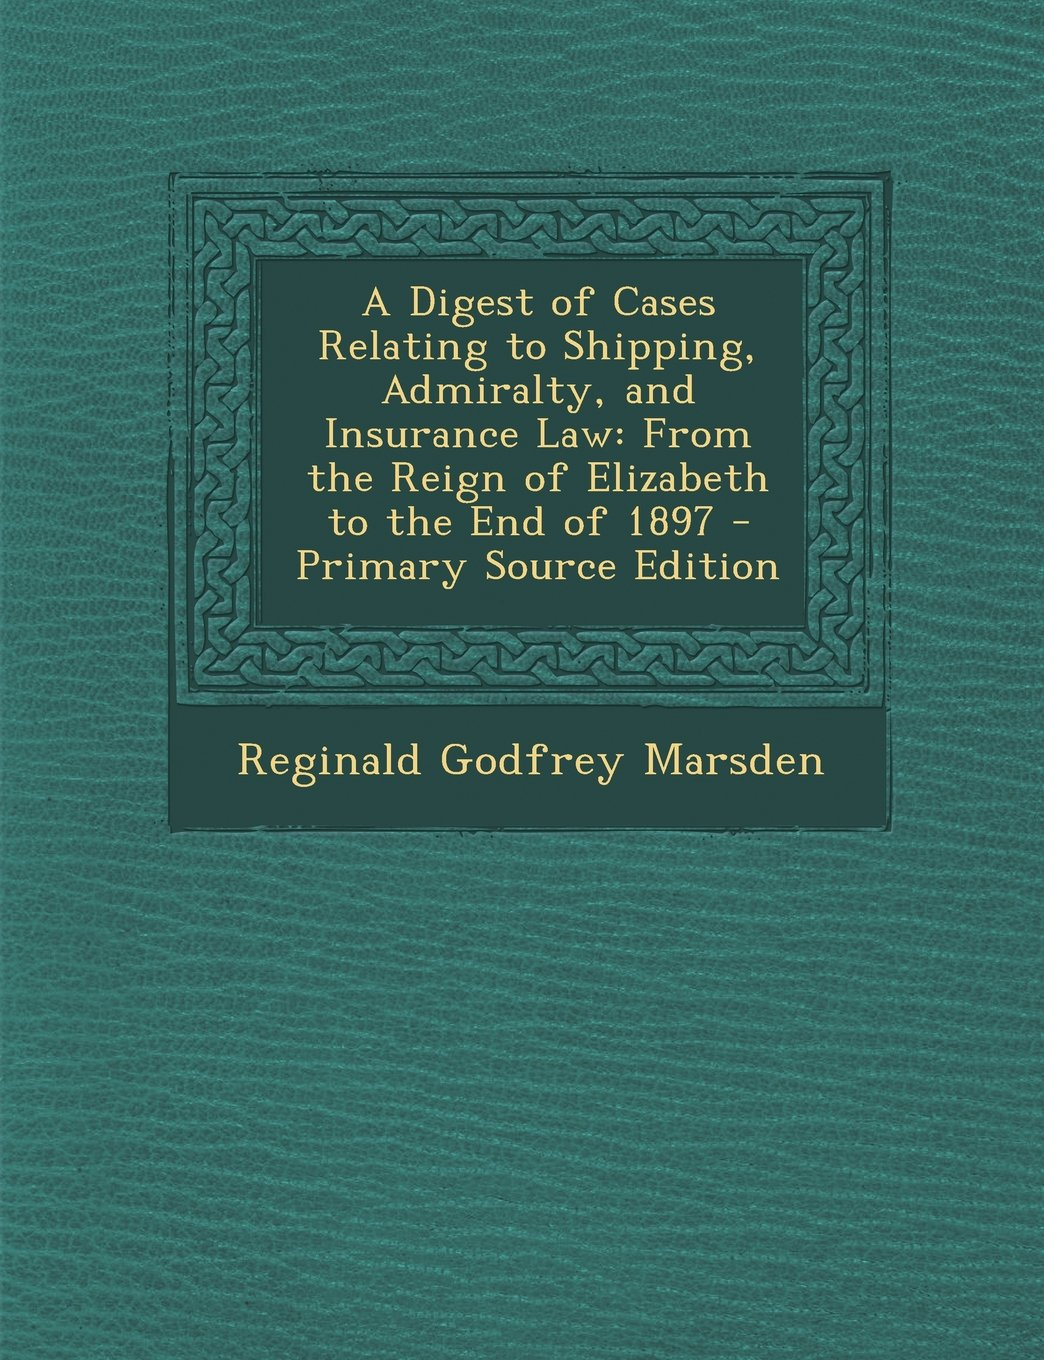 Read Online A Digest of Cases Relating to Shipping, Admiralty, and Insurance Law: From the Reign of Elizabeth to the End of 1897 - Primary Source Edition pdf